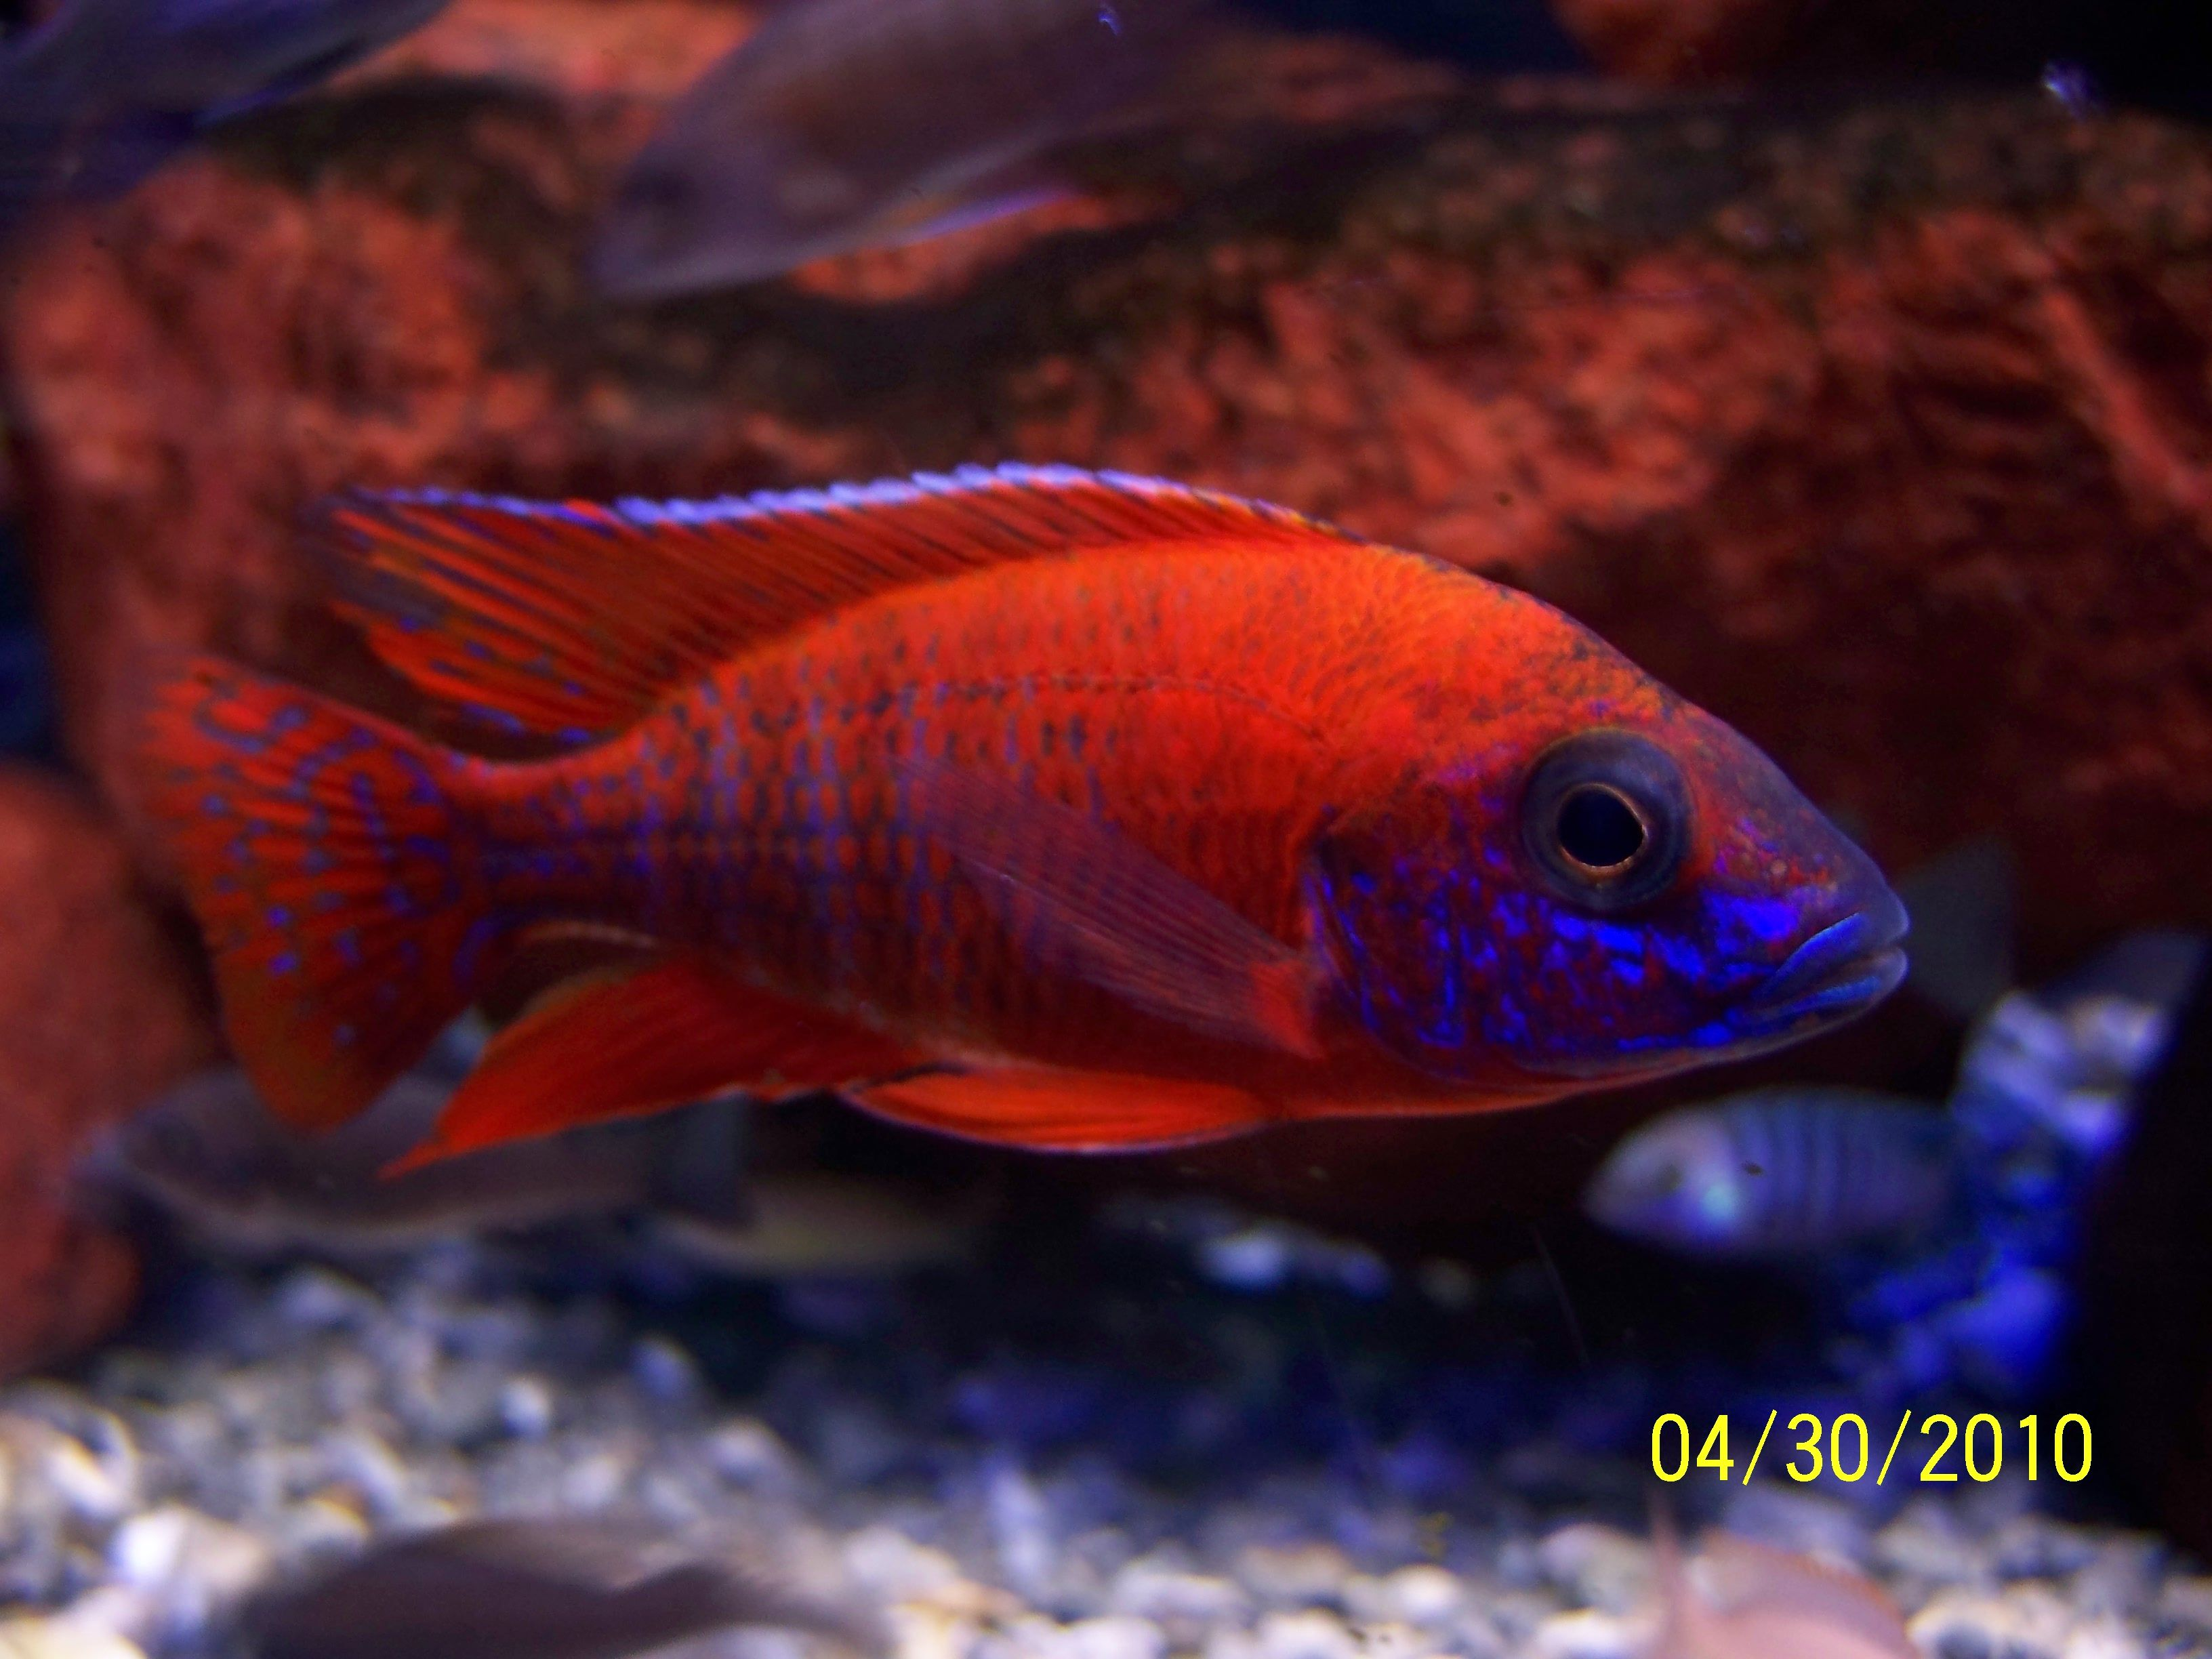 Ruby Red Cichlids Are A Haplochromis Cichlid And Are A Pleasure